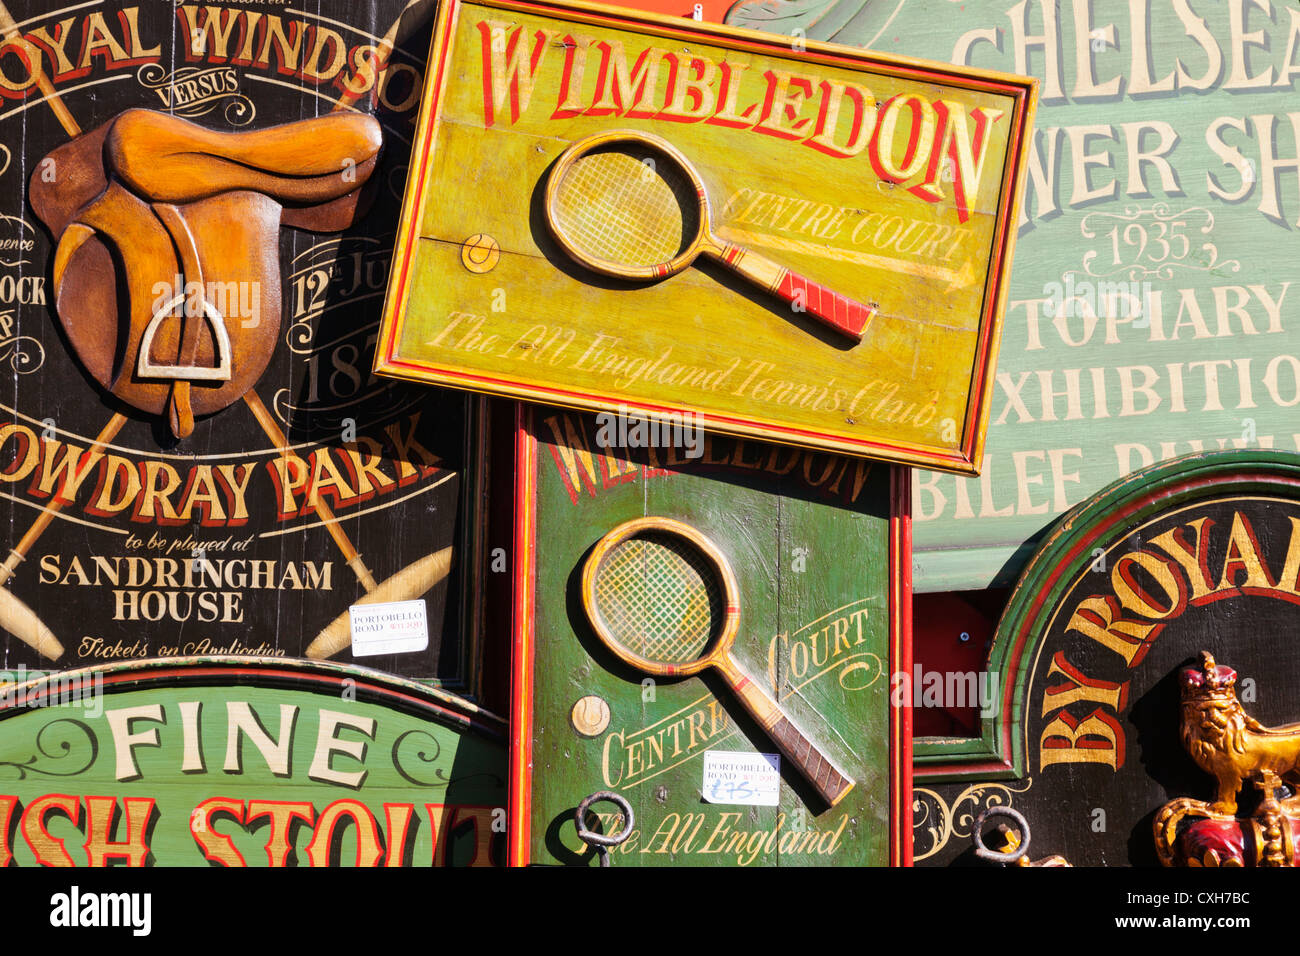 England, London, Notting Hill, Portobello Road, Antique Shop Display, Reproduction Antique Signboards - Stock Image